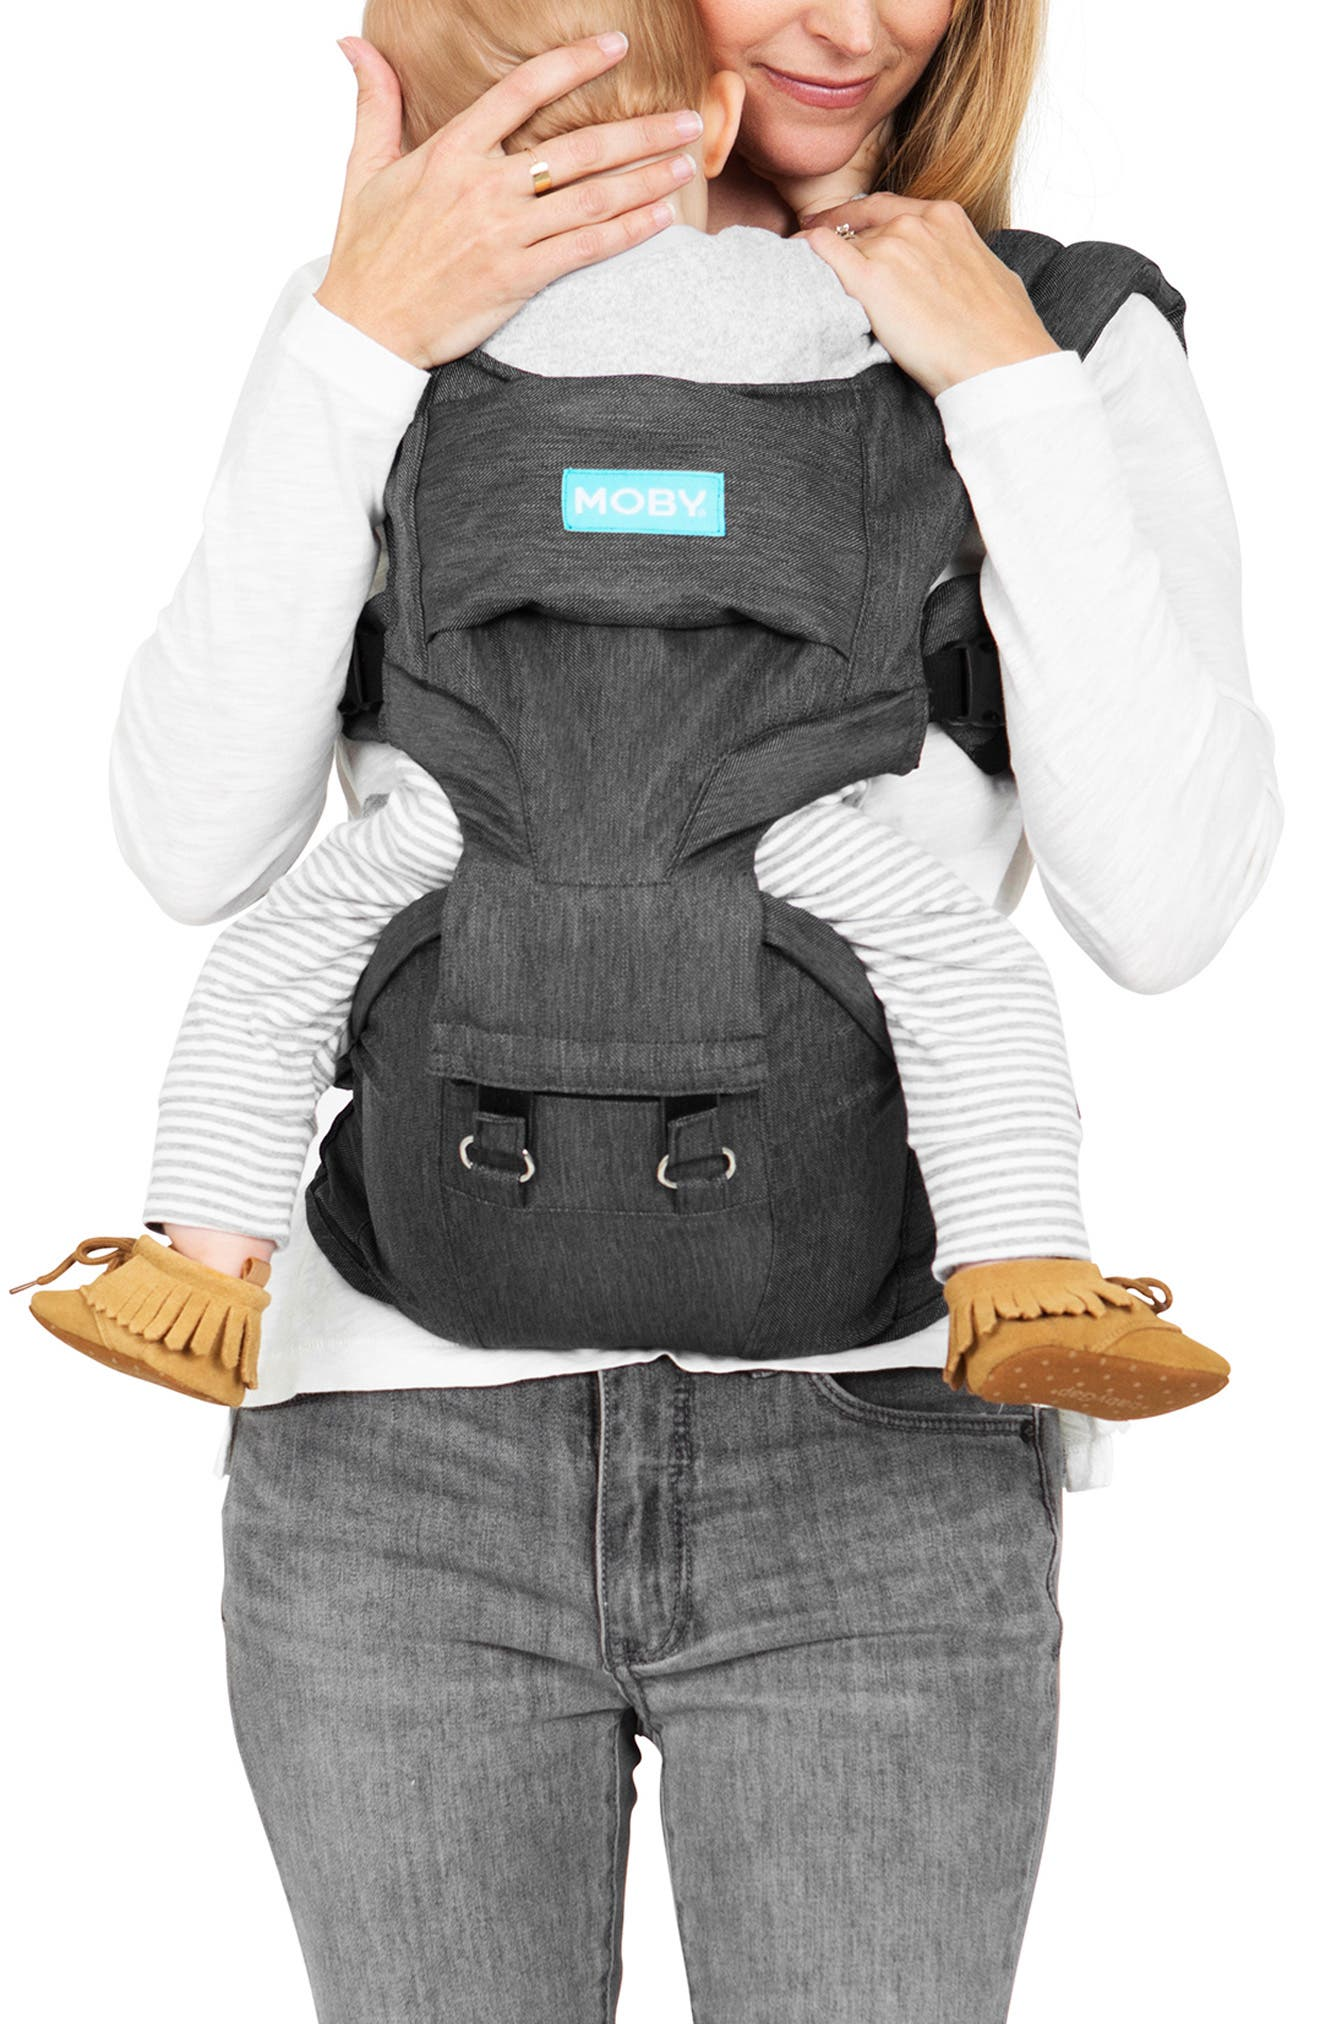 2-in-1 Baby Carrier & Hip Seat,                             Main thumbnail 1, color,                             GREY